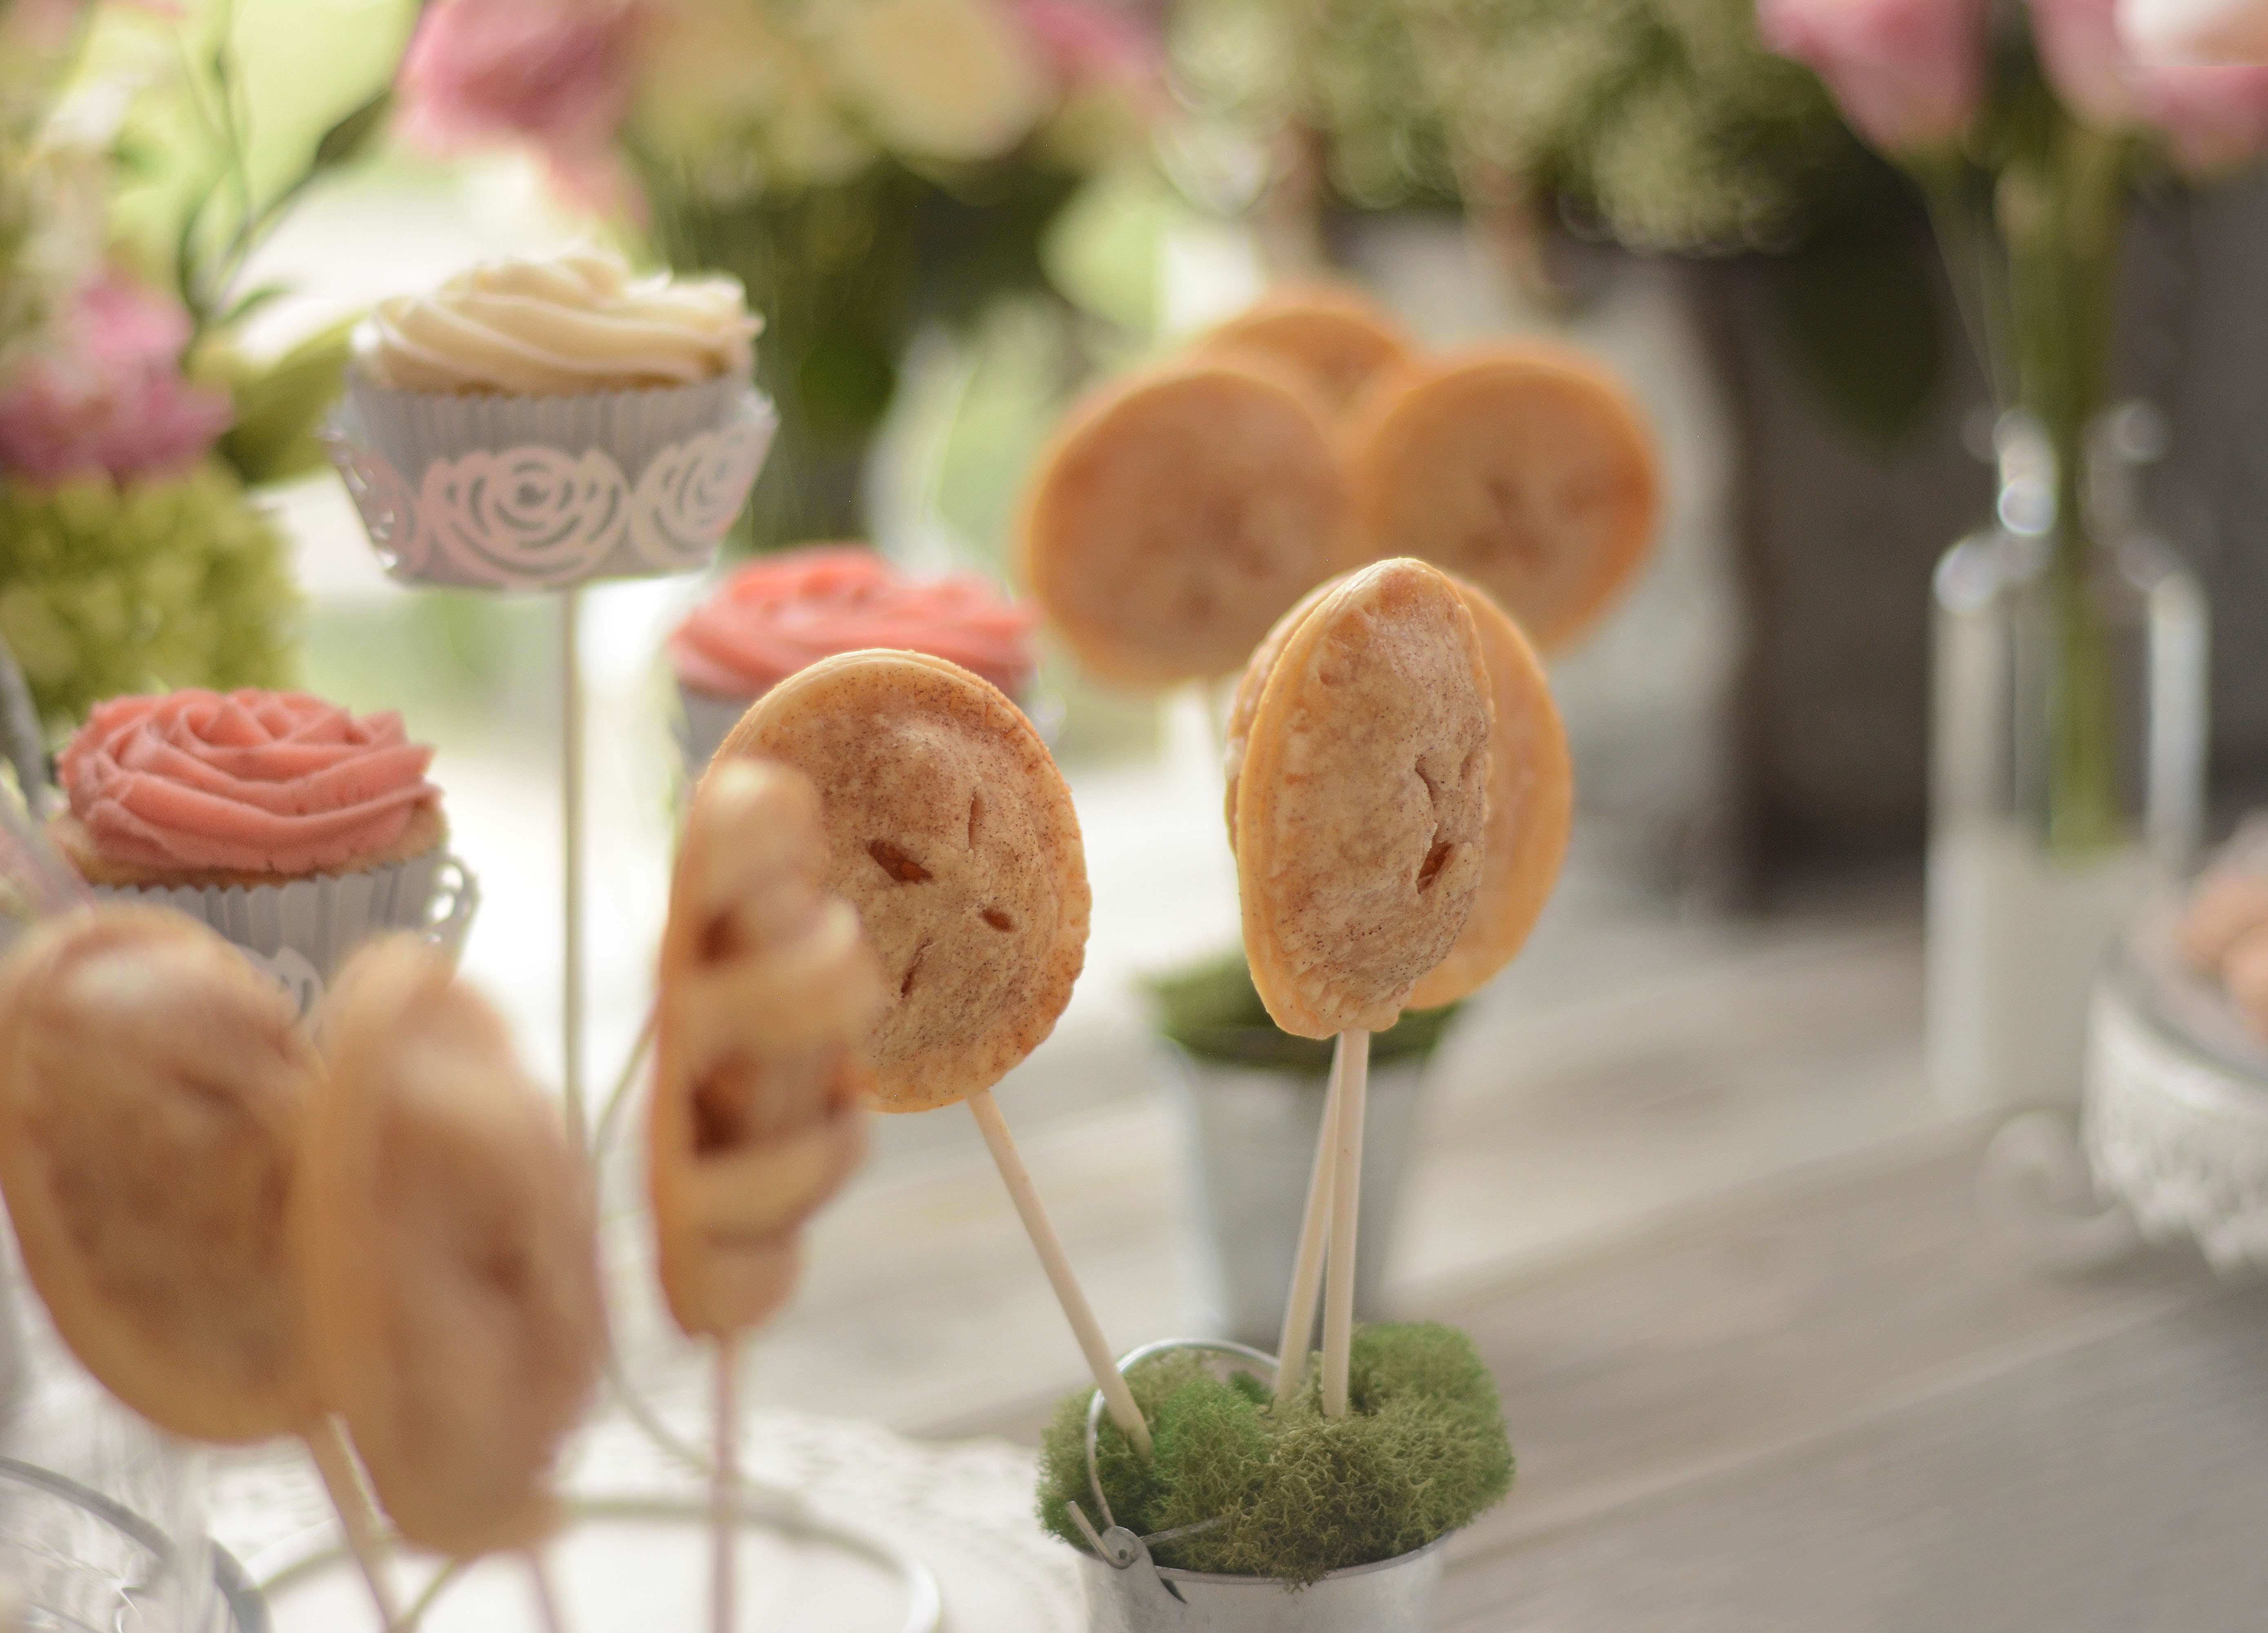 – 7 b Melissa Mae Etue Sweets apple pie pops french macaroons fruit food photographer katherine eastman miami Photography cooking baking pink rose Cake baby shower cupcakes_01